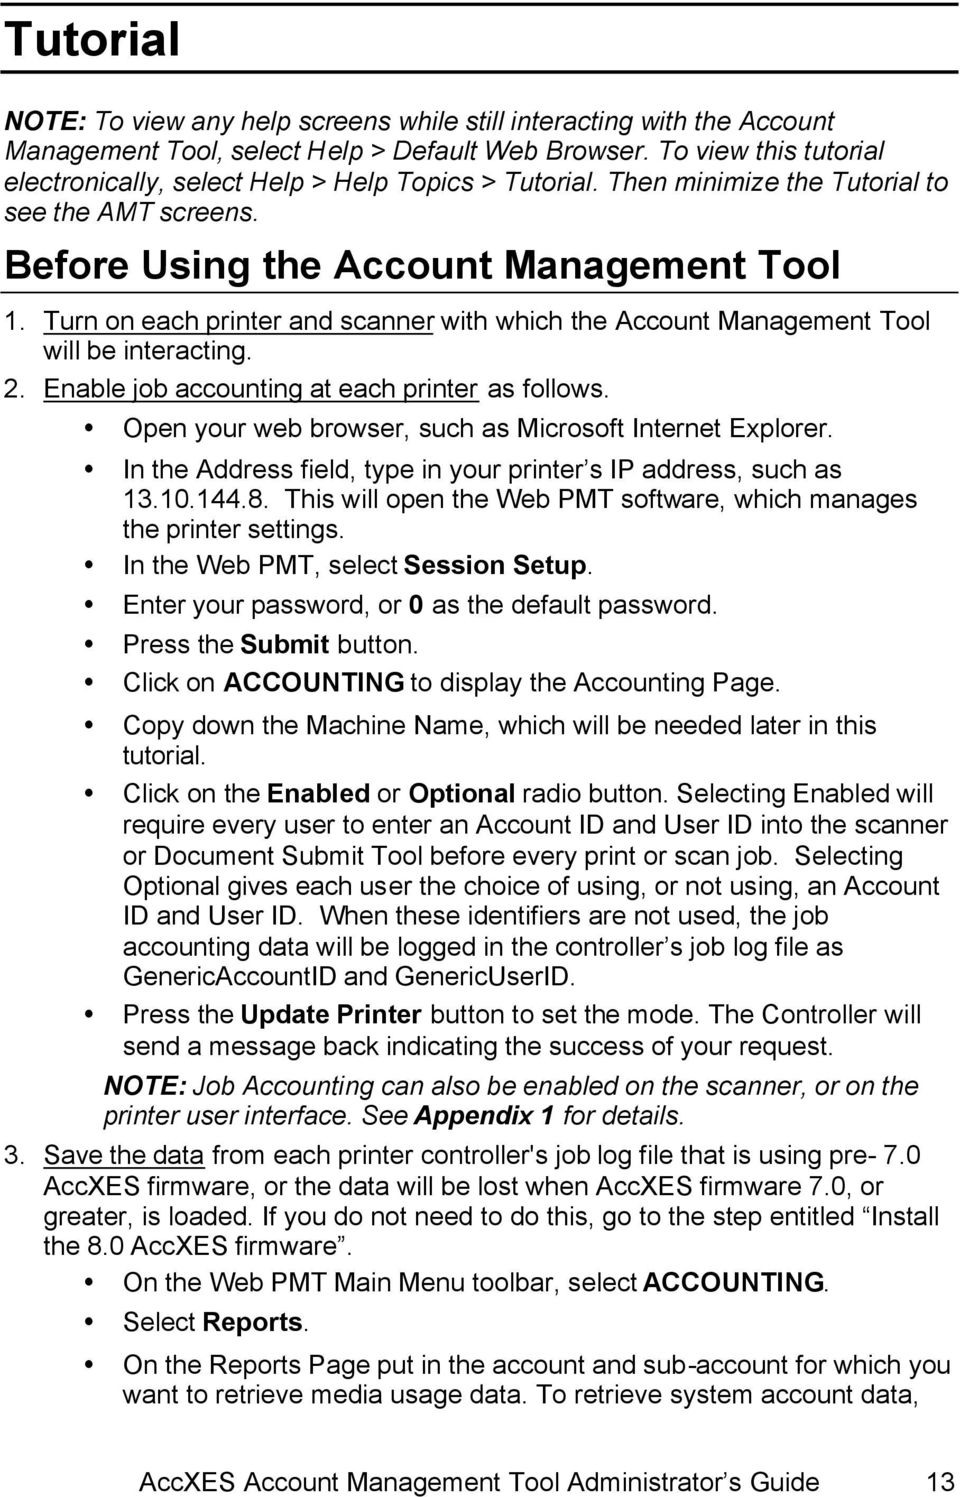 Turn on each printer and scanner with which the Account Management Tool will be interacting. 2. Enable job accounting at each printer as follows.